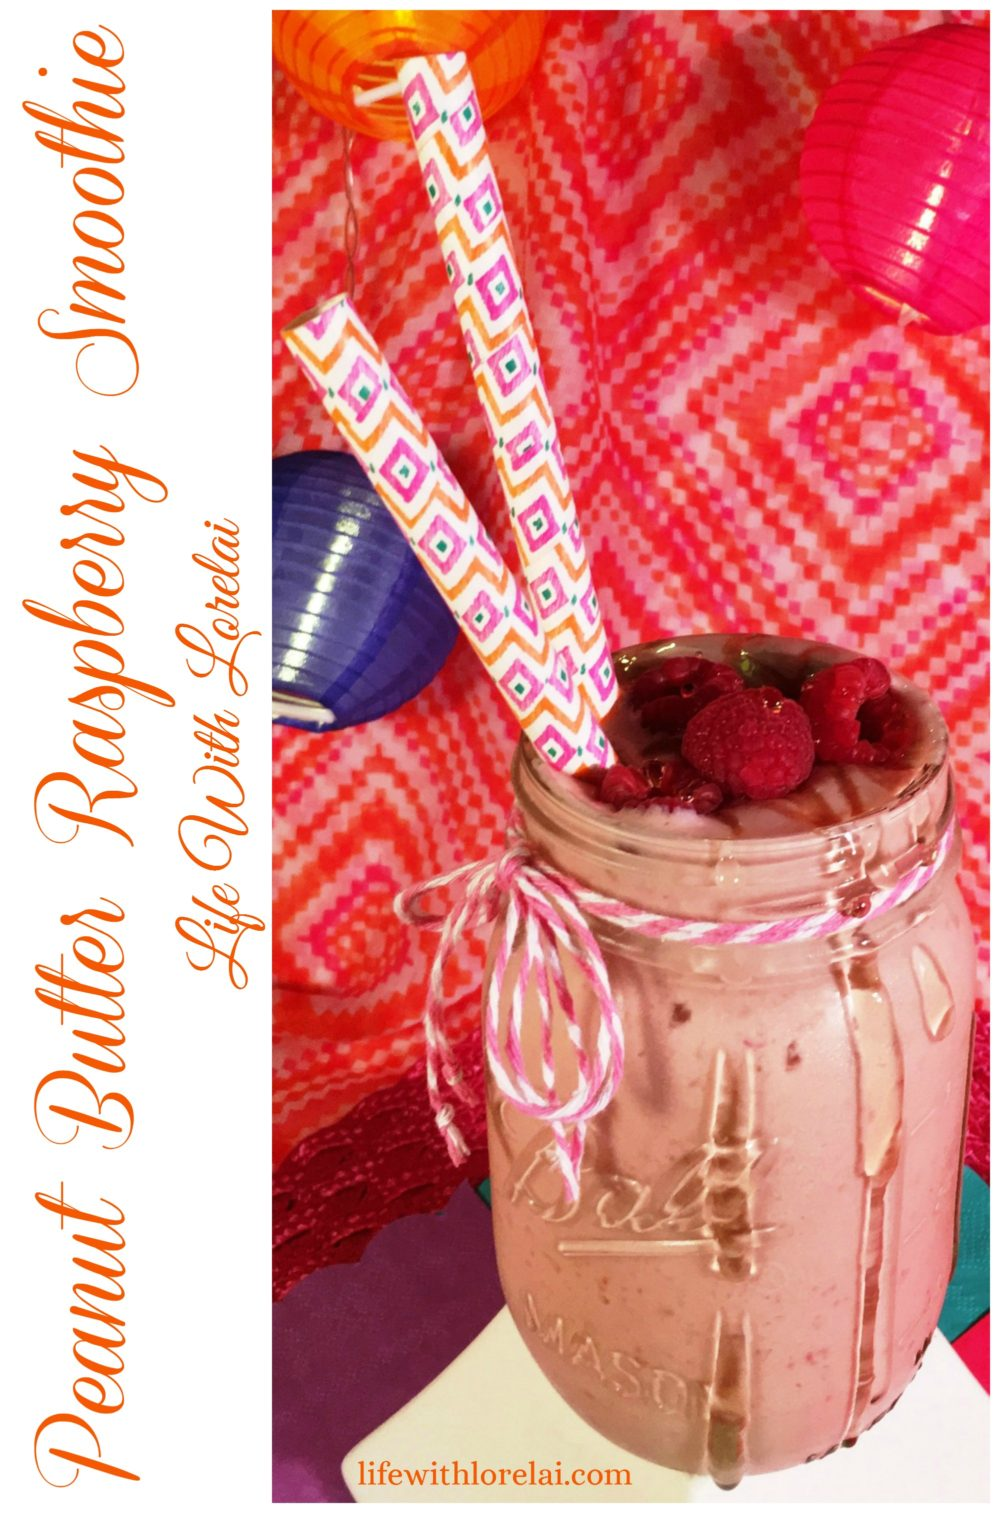 Peanut-Butter-Raspberry-Smoothie-CollectiveBias-SoFab